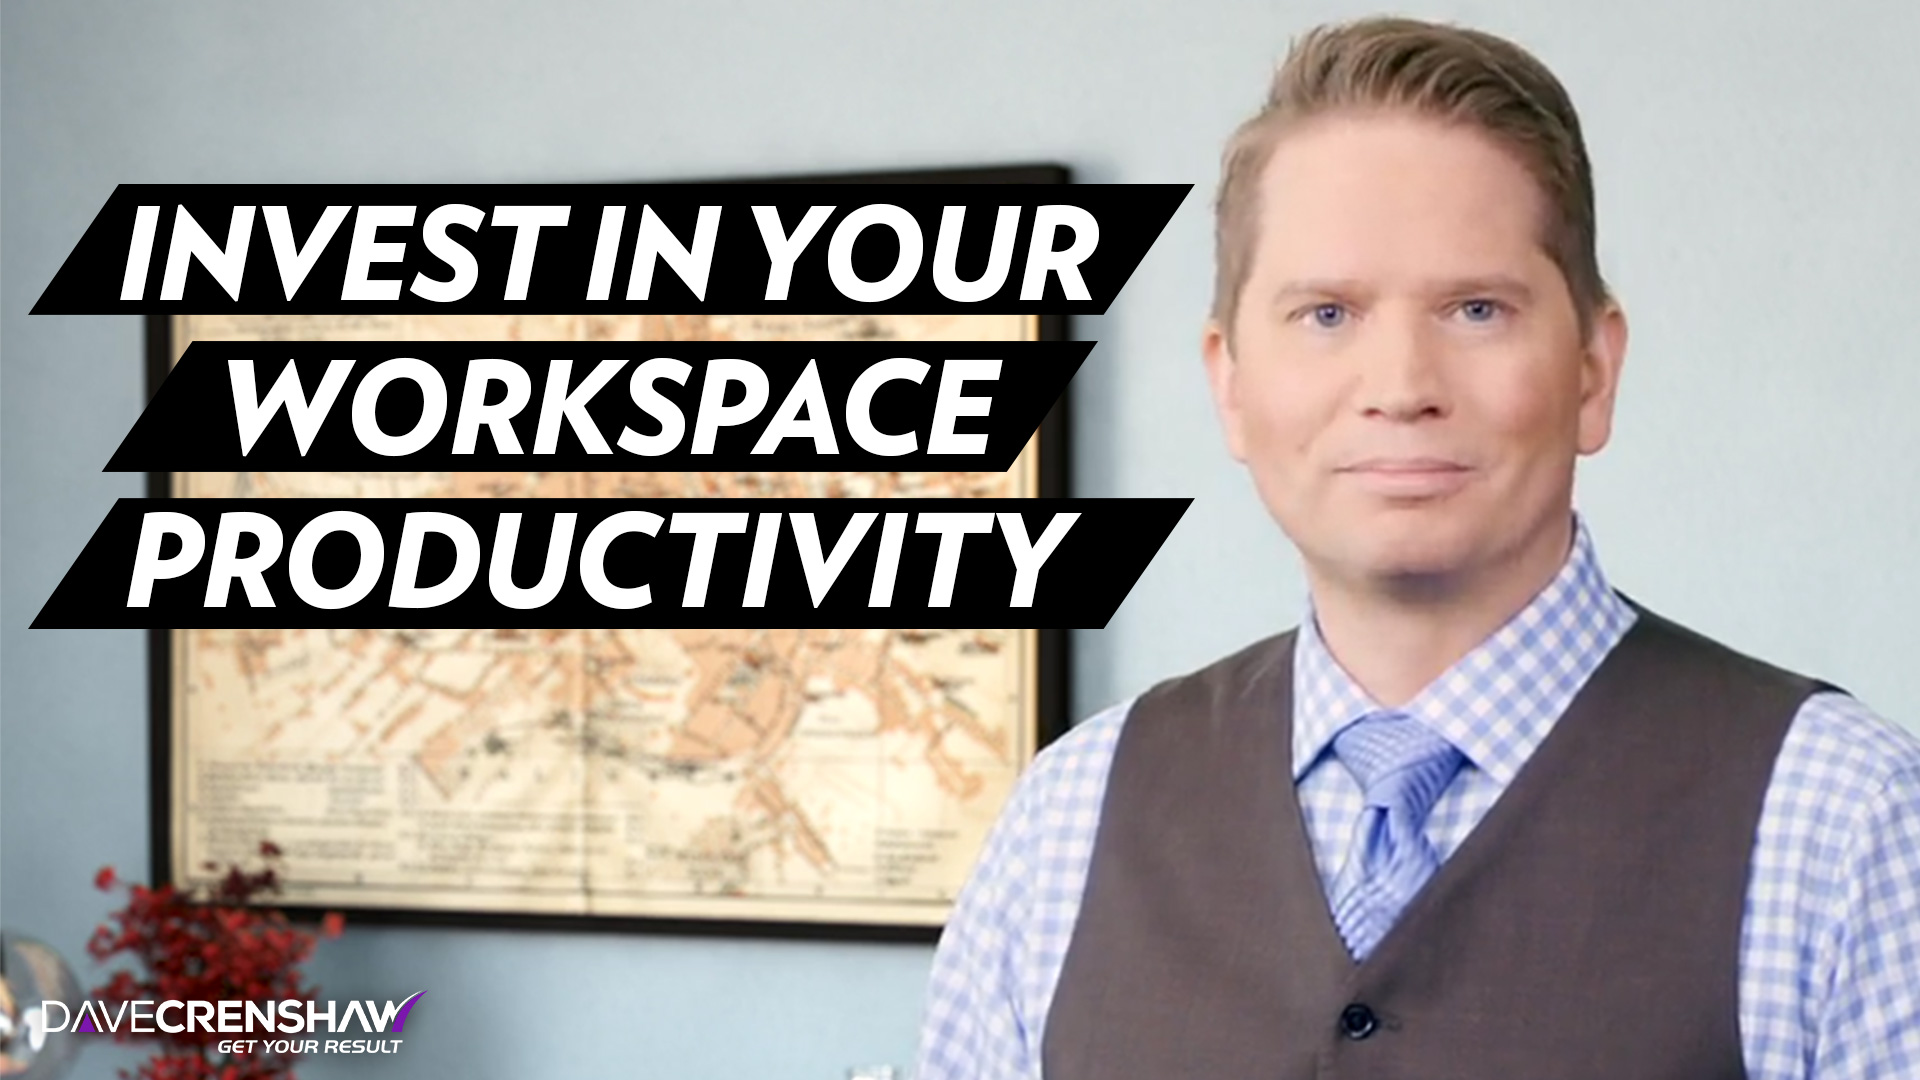 Invest in your workspace productivity